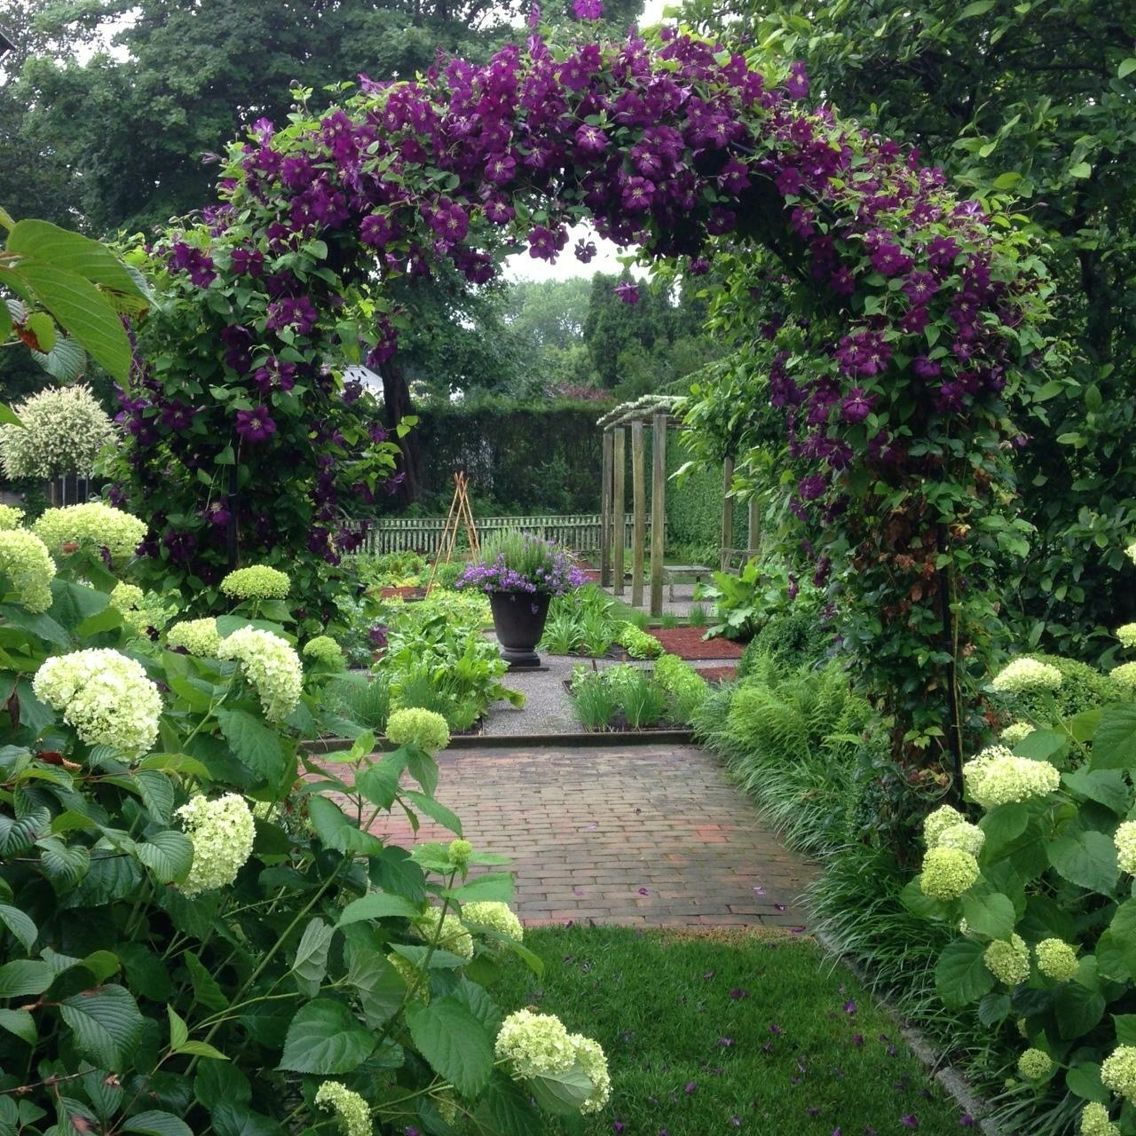 clematis-clad archway and Hydrangea Annabelle in Ina ...